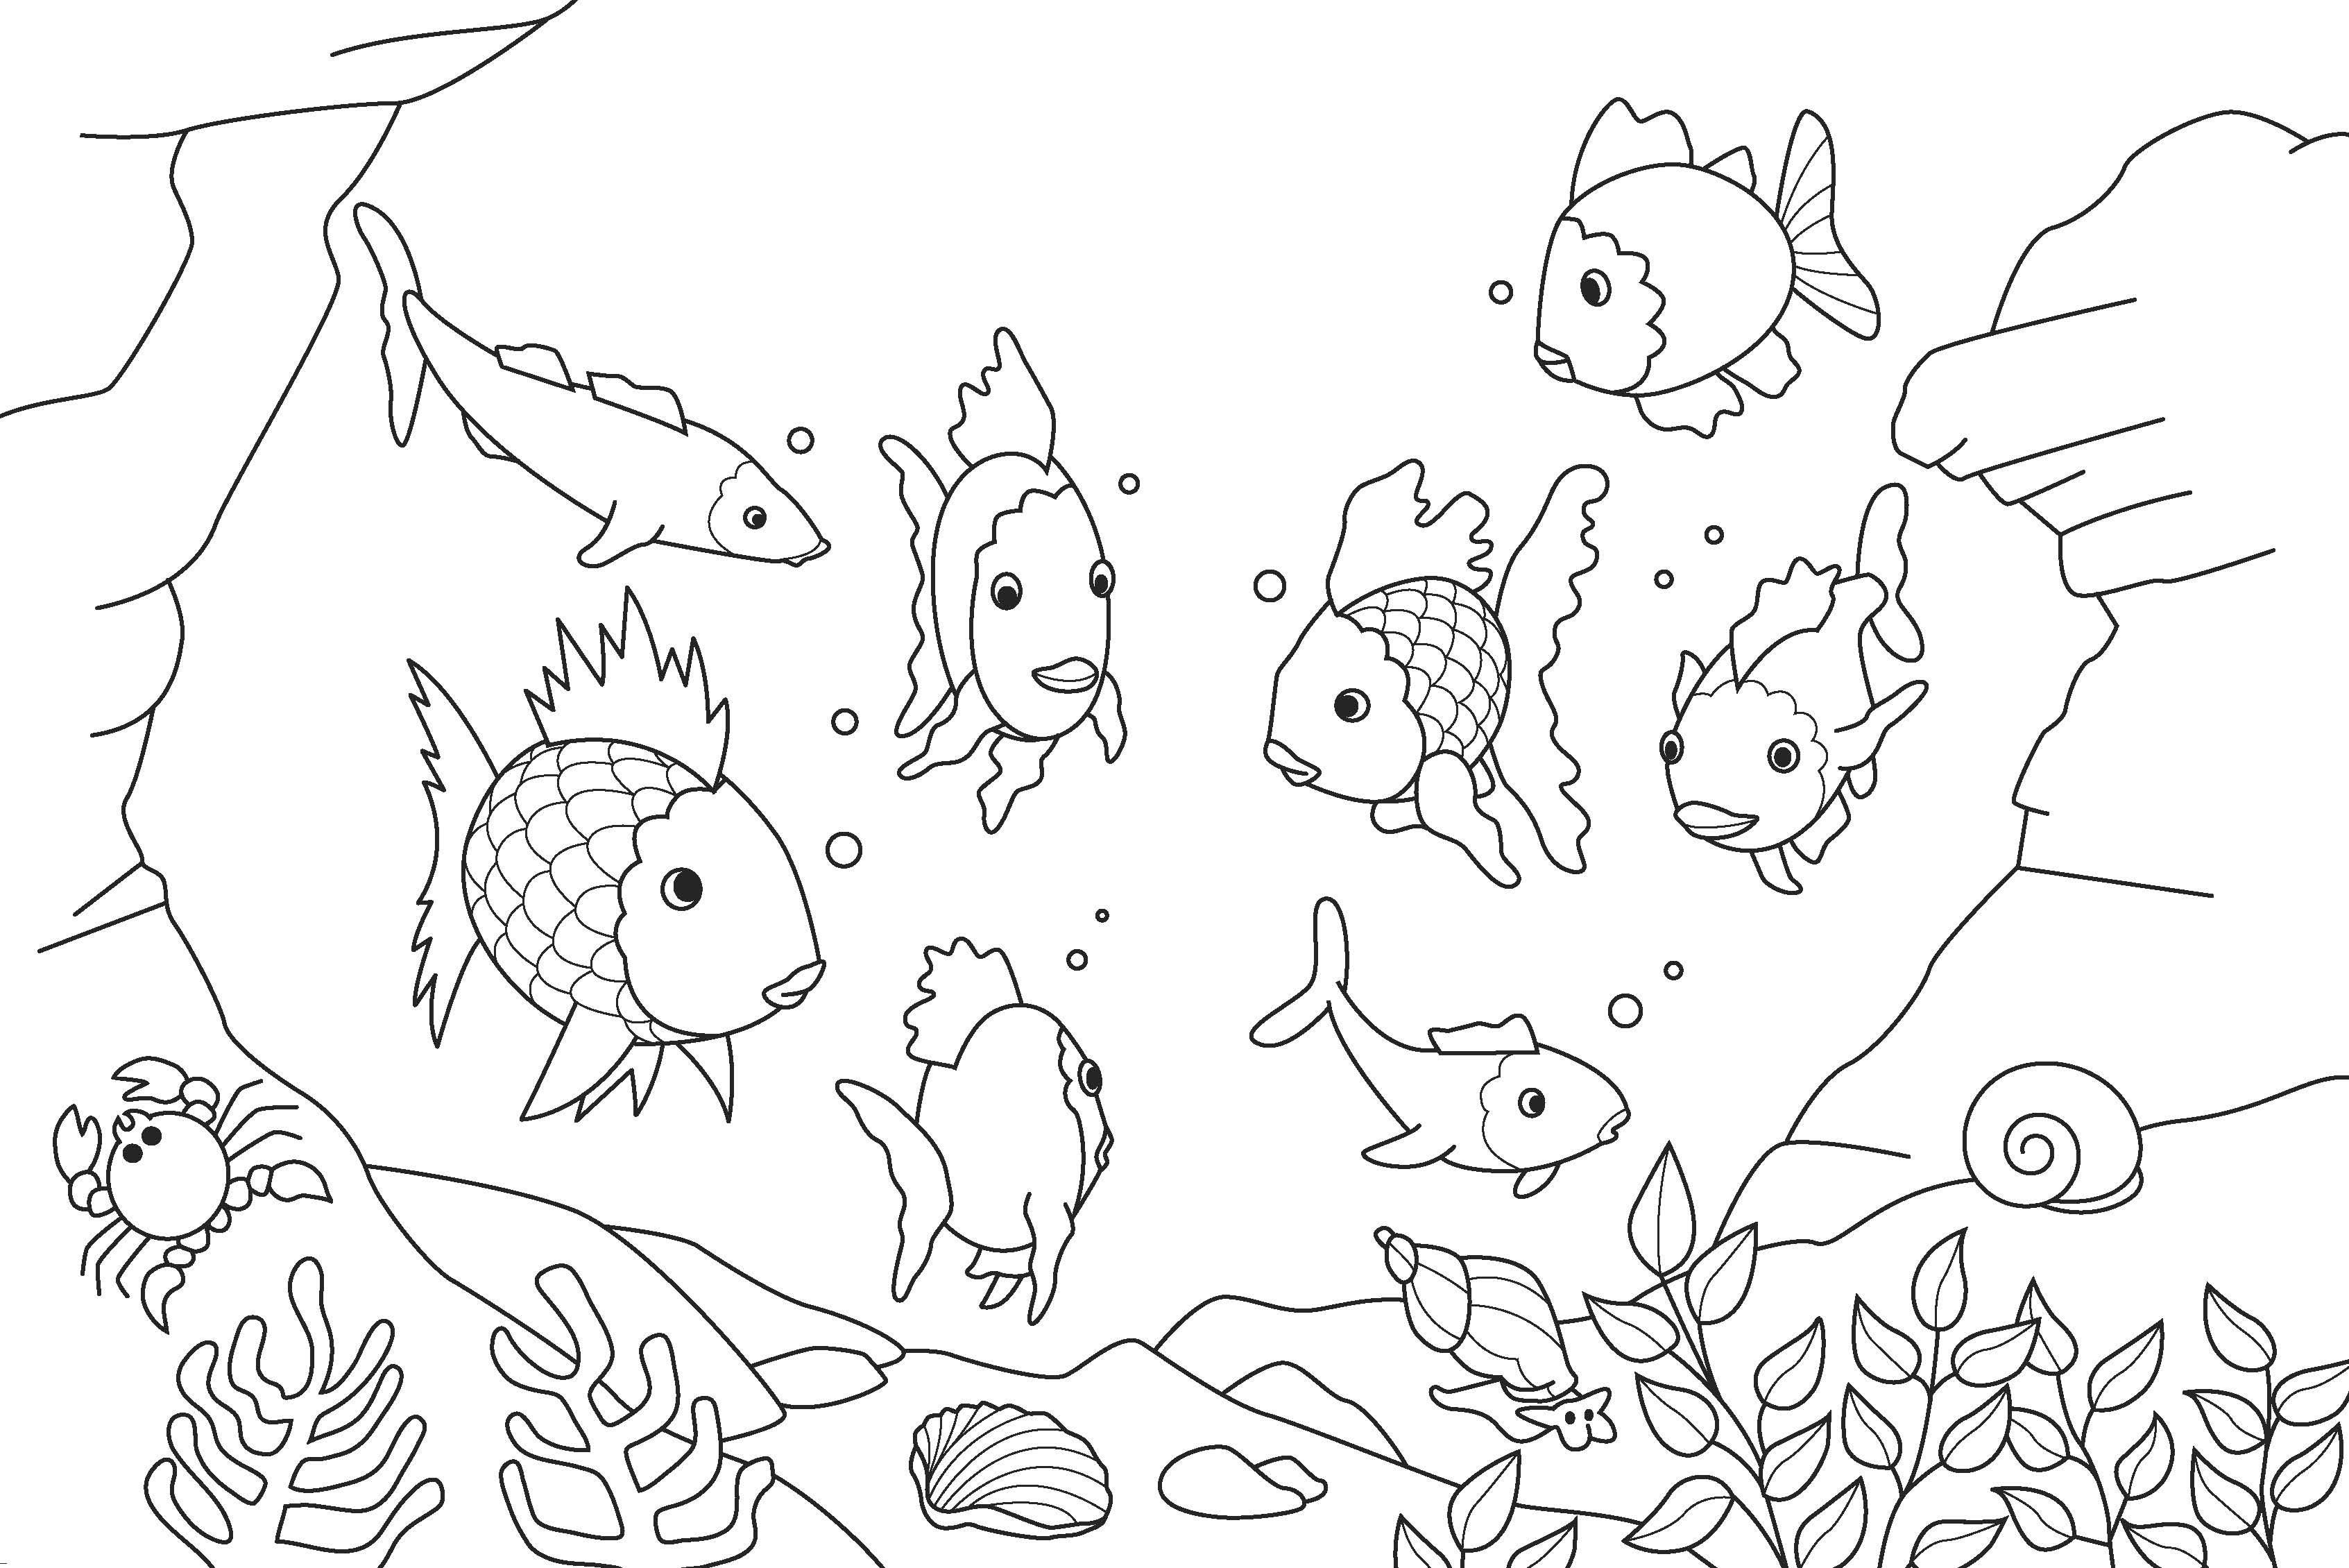 fish coloring pages kids - Fishing Coloring Pages